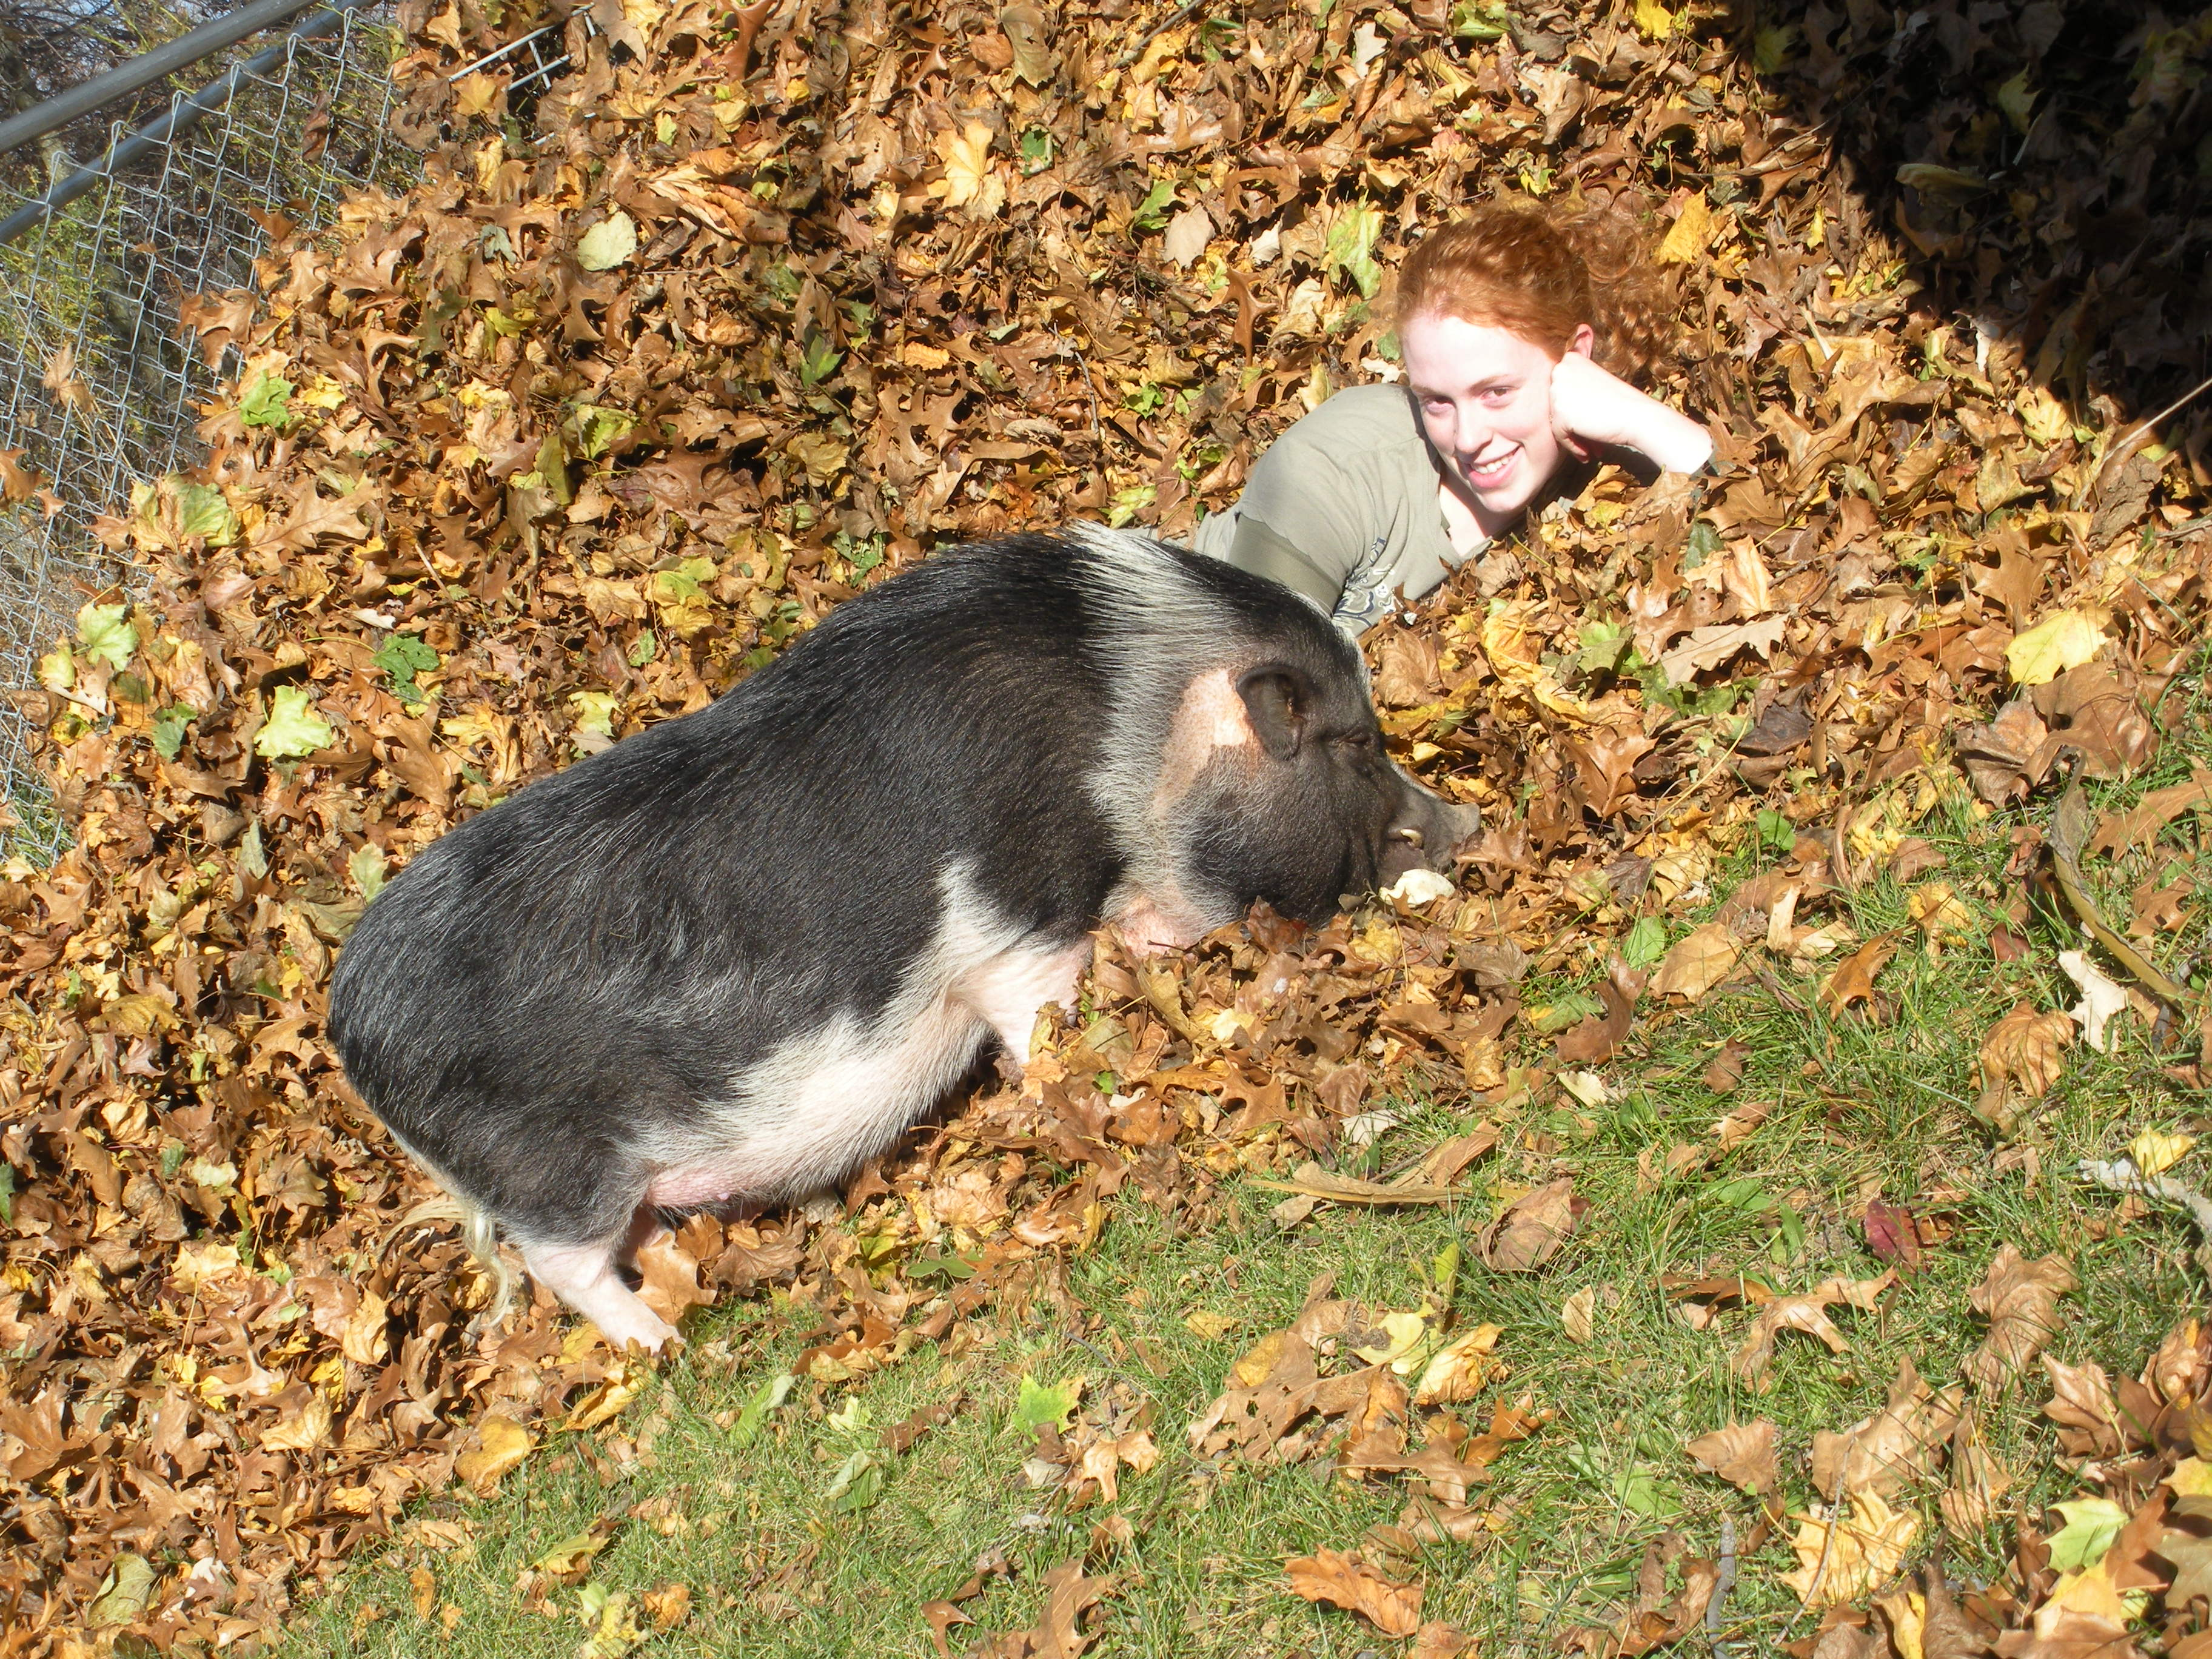 Rosco and Mom playing in the leaves.